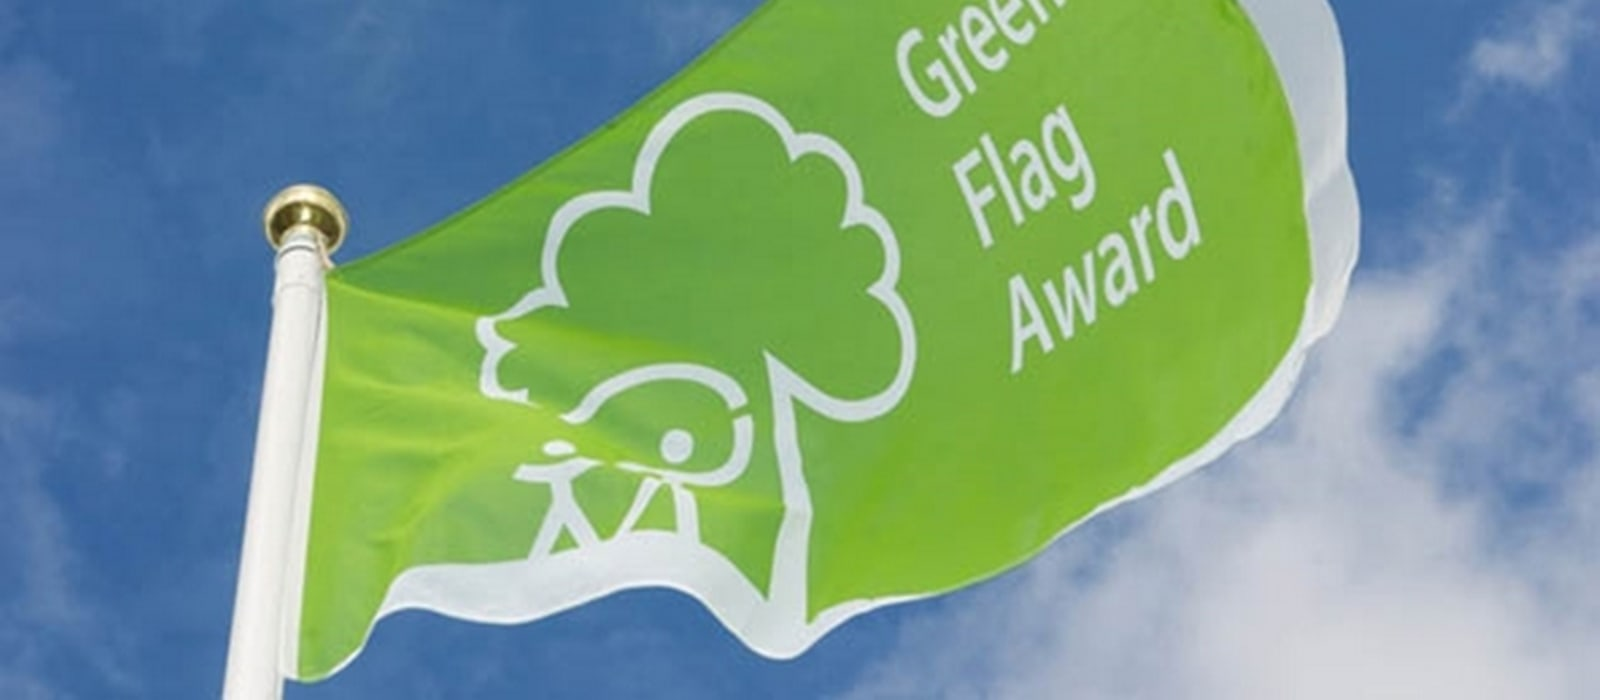 Green Flag Award for the Twelfth Time